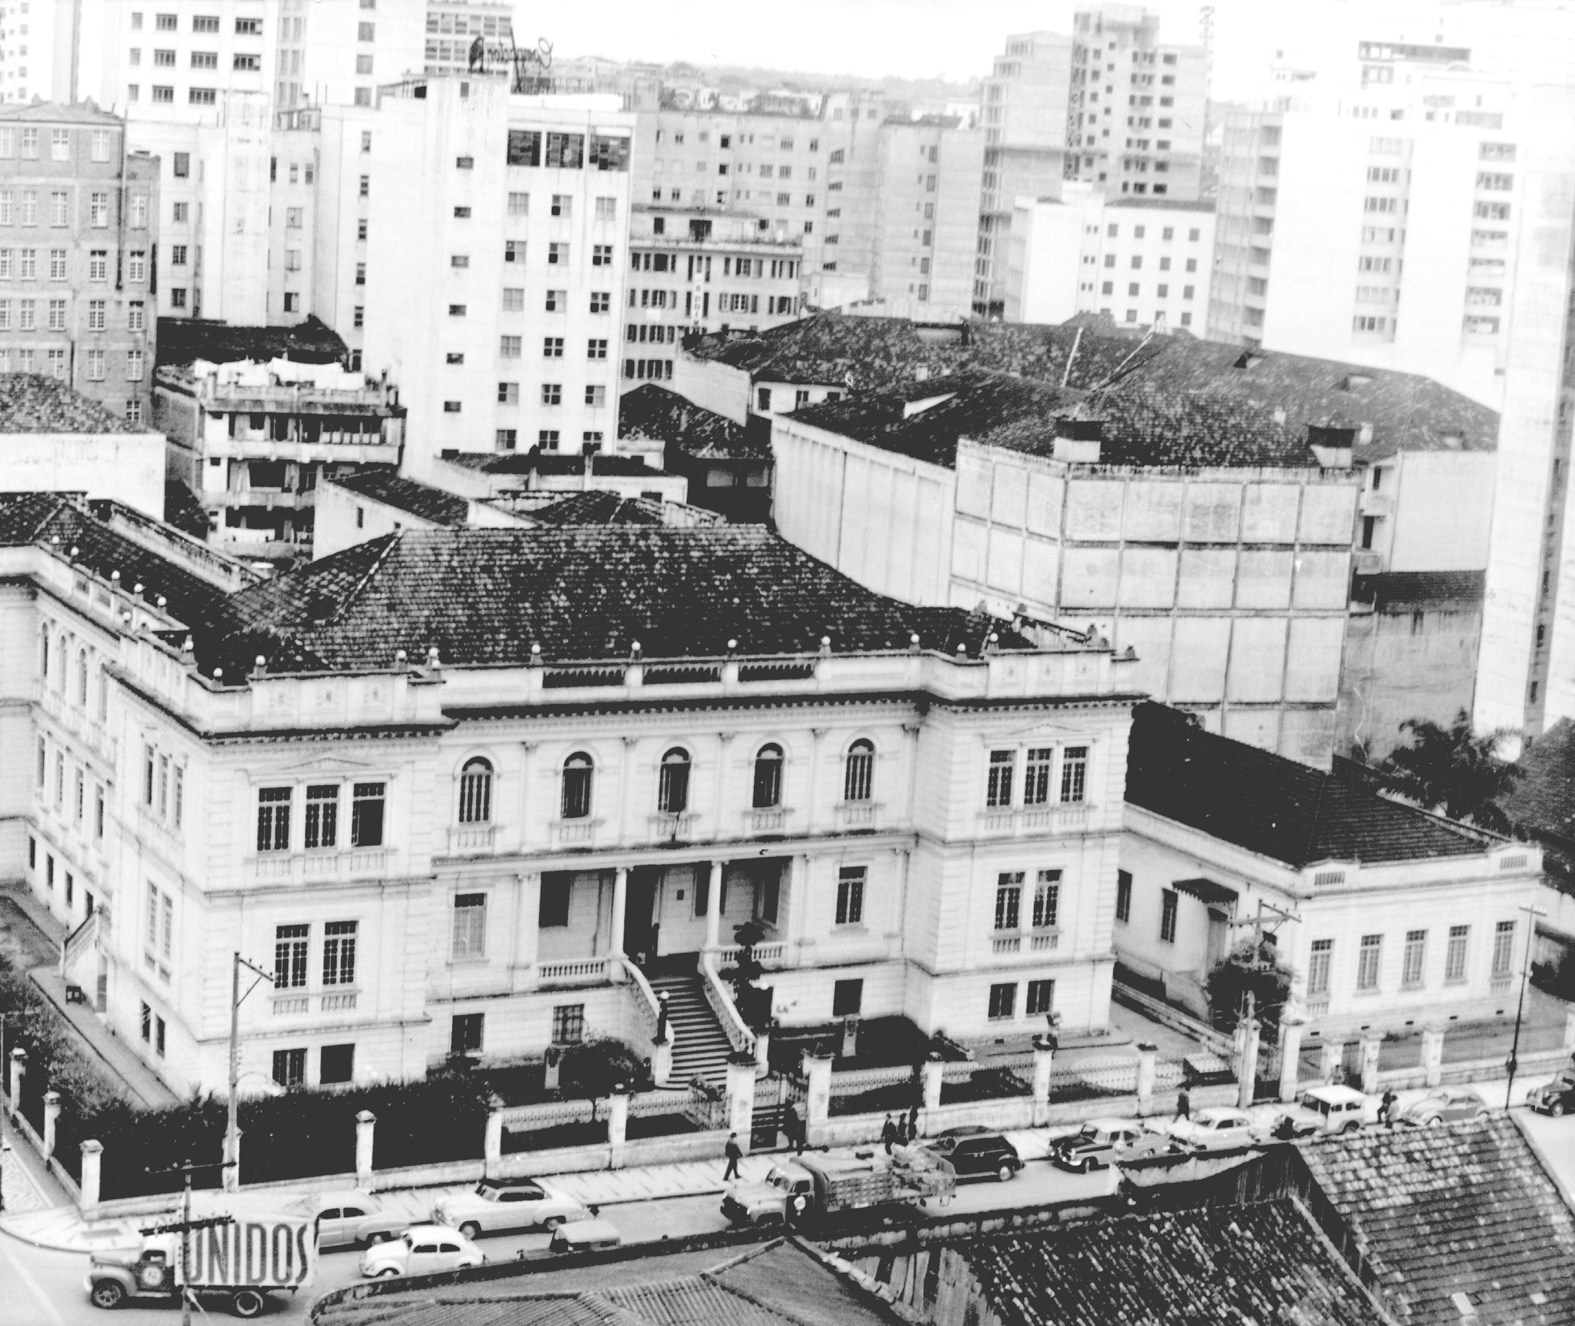 Vista do Instituto de Educação do Paraná Professor Erasmo Pilotto, década de 1960.